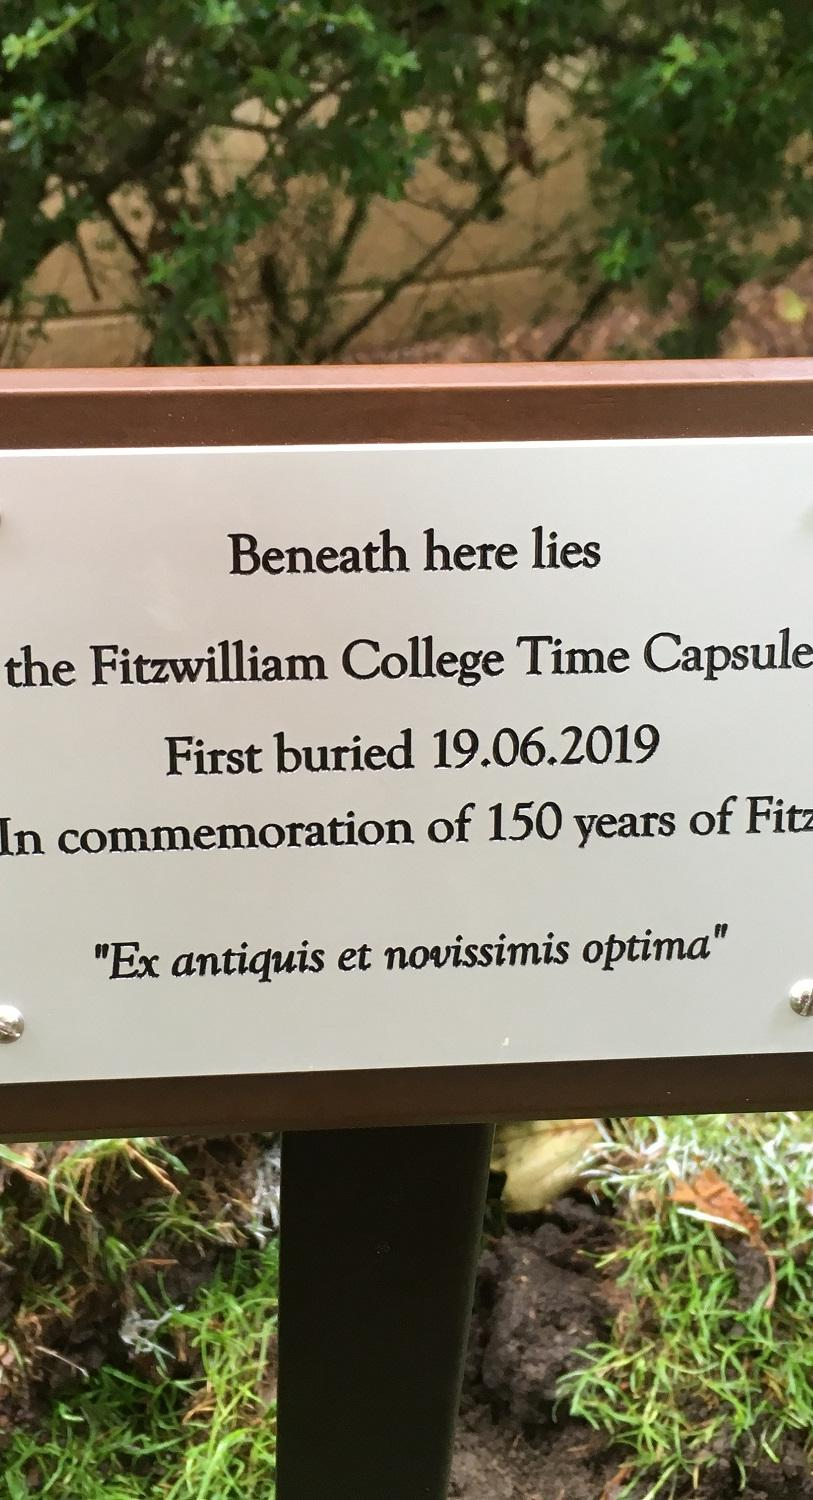 The Fitzwilliam time capsule location is marked by a plaque